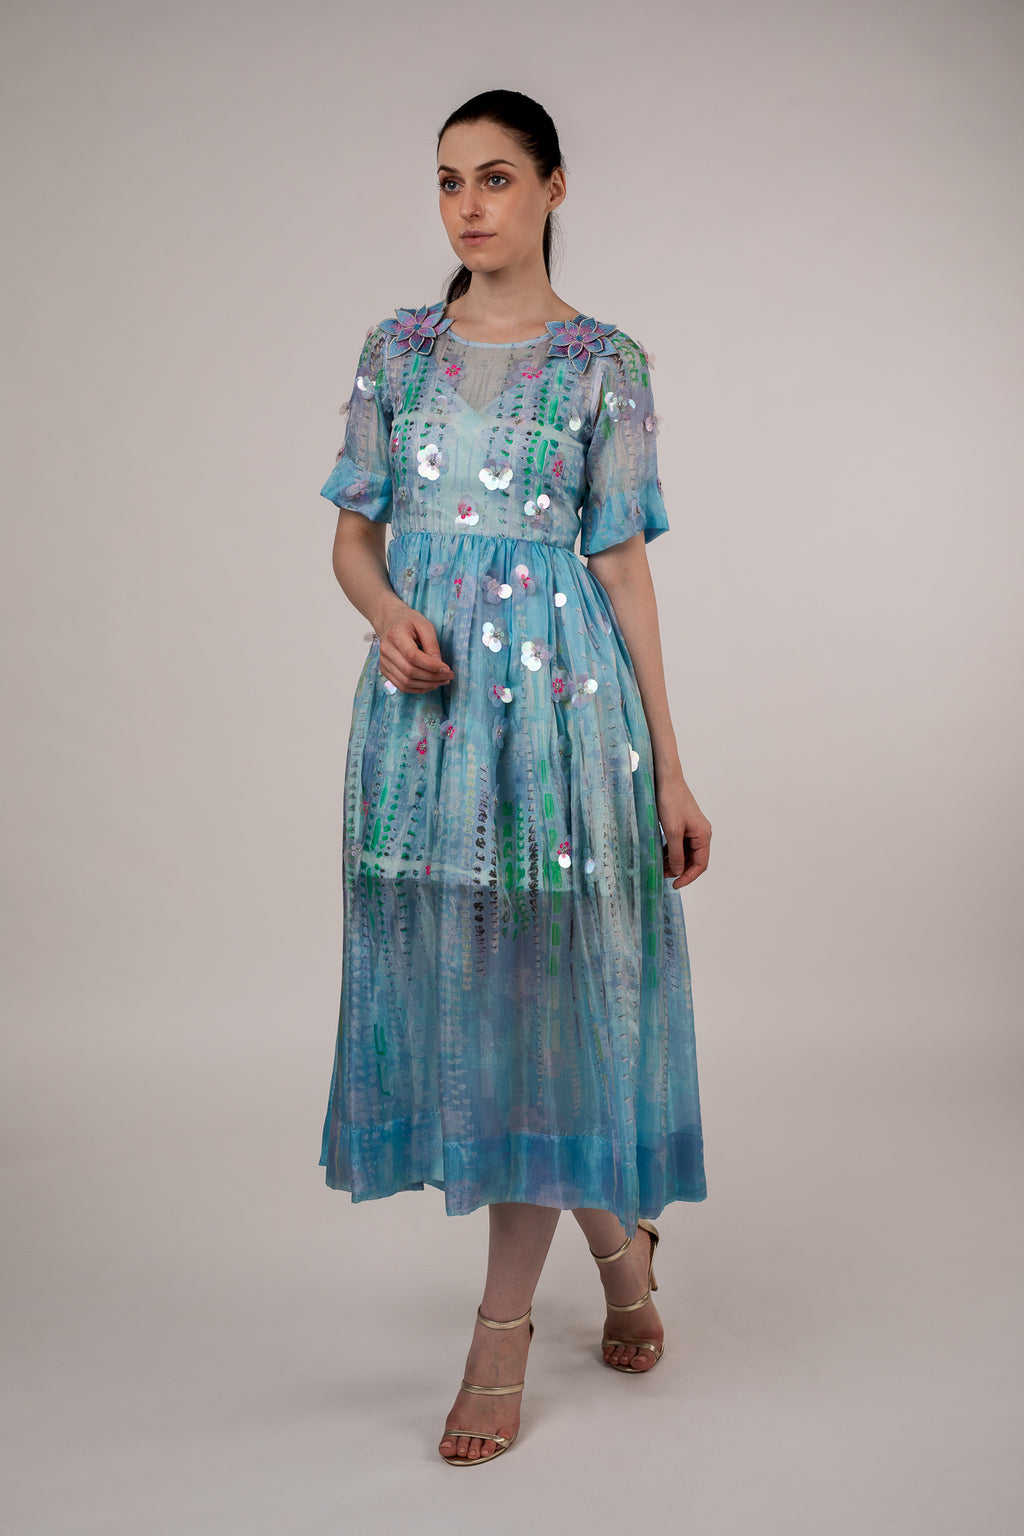 Photomontage Electrified Floral Dress